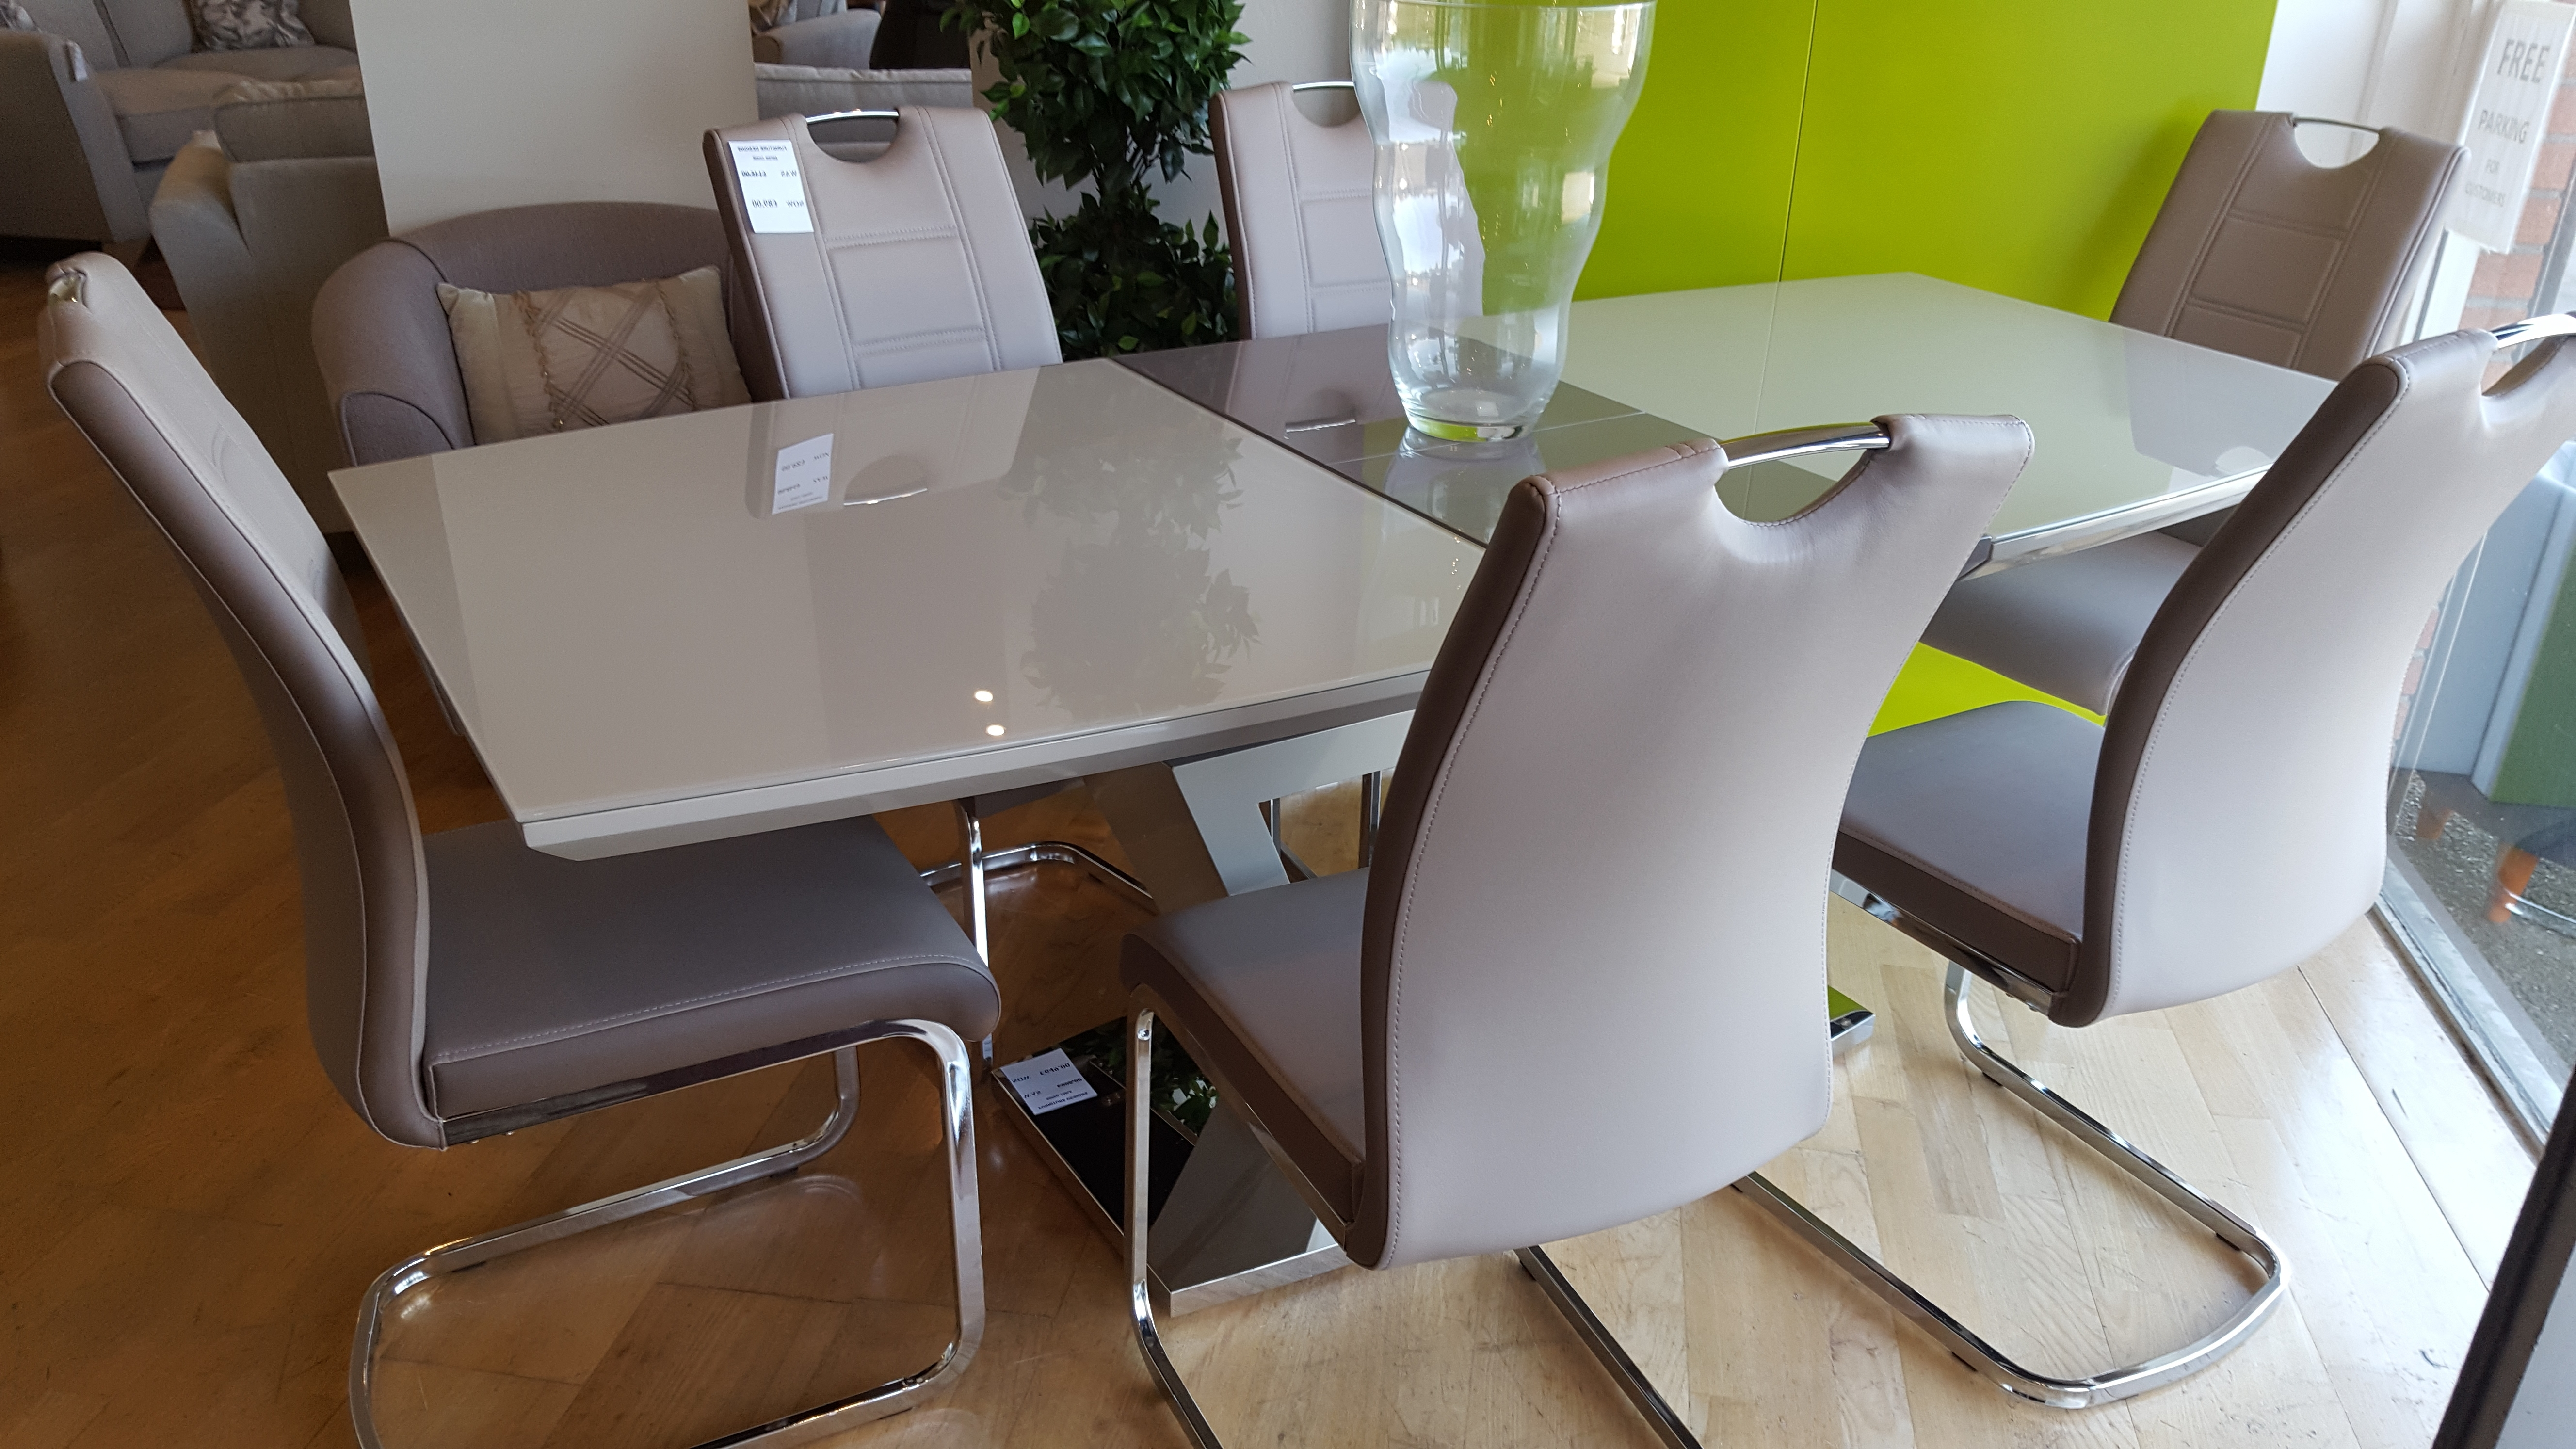 Aspen Dining Tables Within Best And Newest Aspen Table + 4 Chairs – Furniture Designs (View 10 of 25)